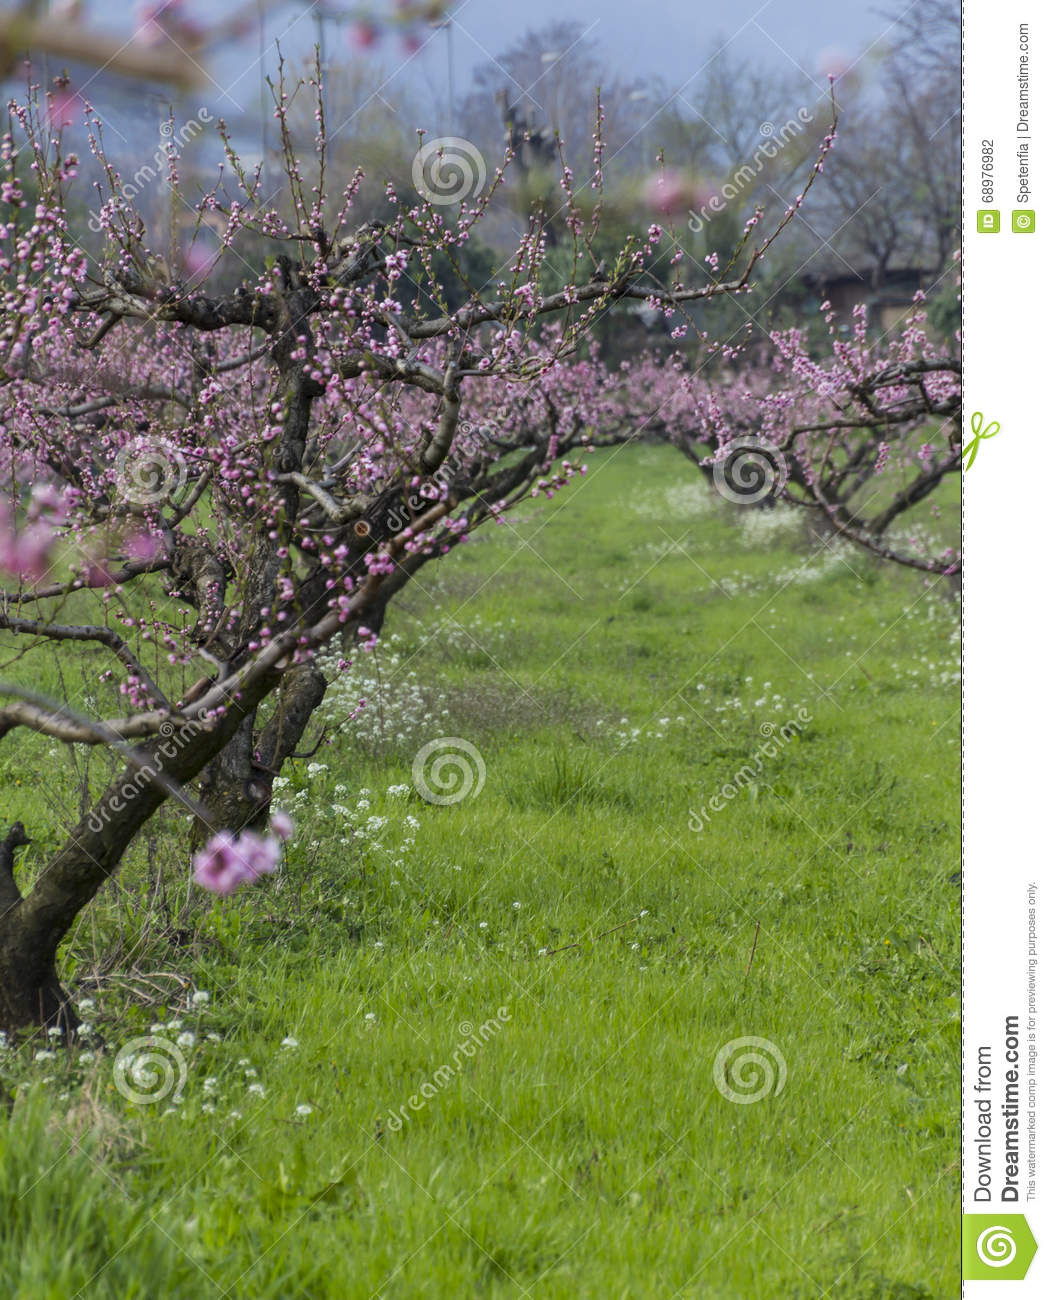 Cultivation of peach trees